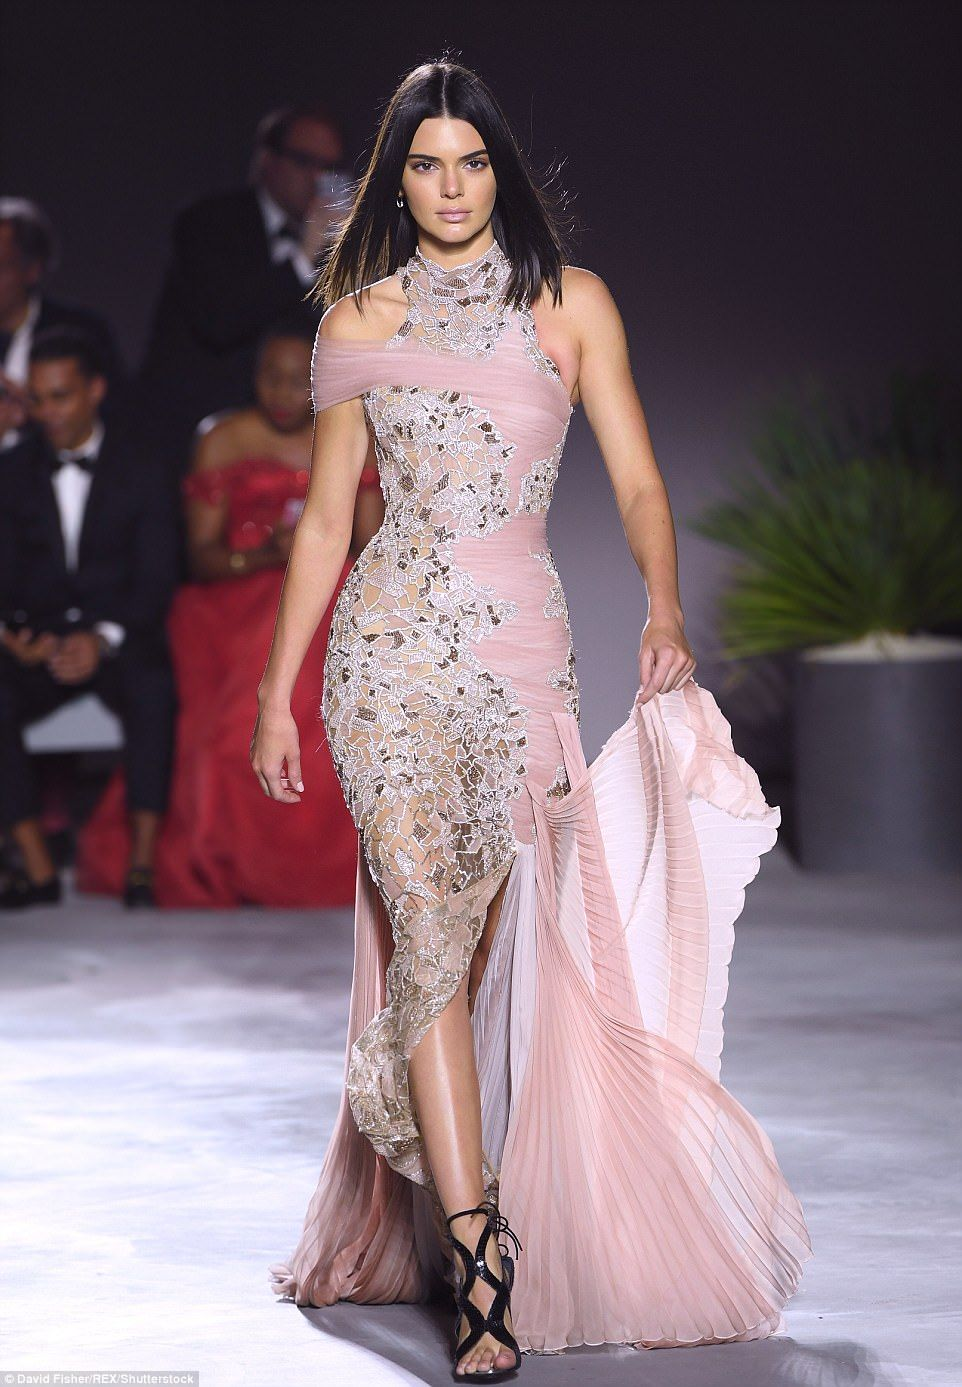 And another one! Kendall held up the train of this nude number with one hand as she strutted in front of the cameras